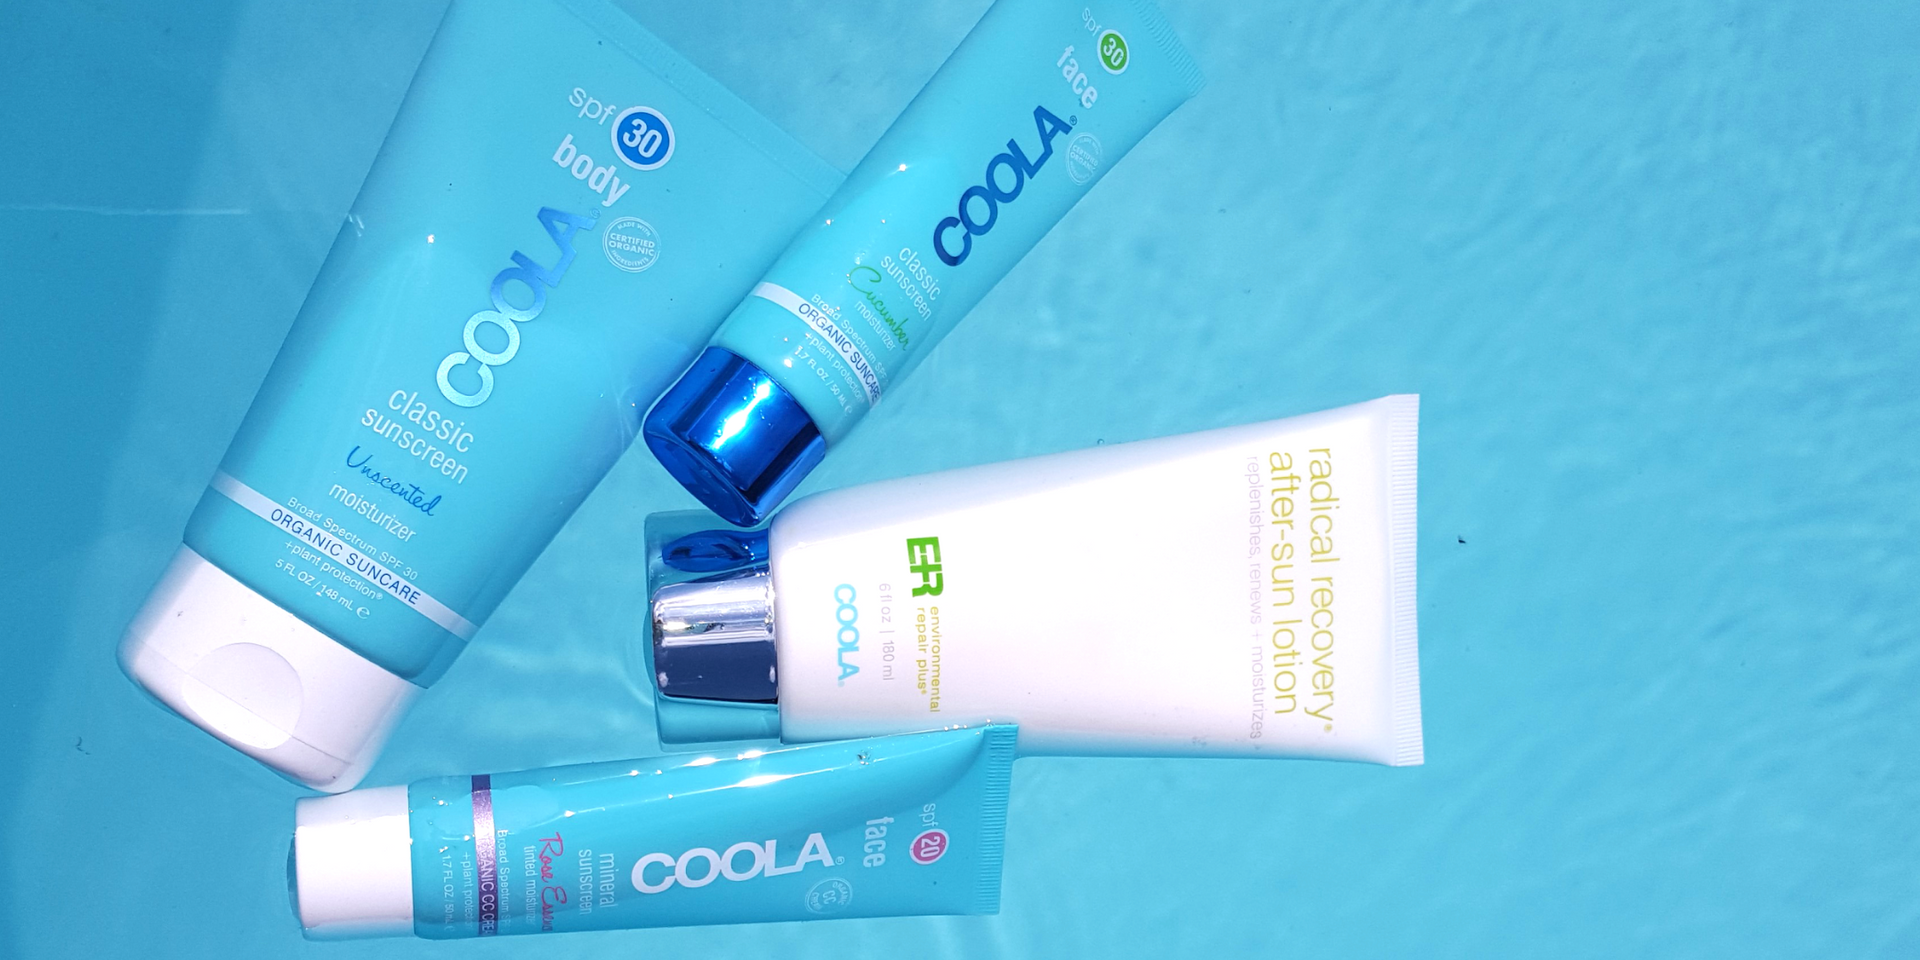 COOLA suncare_Spa Product Promo